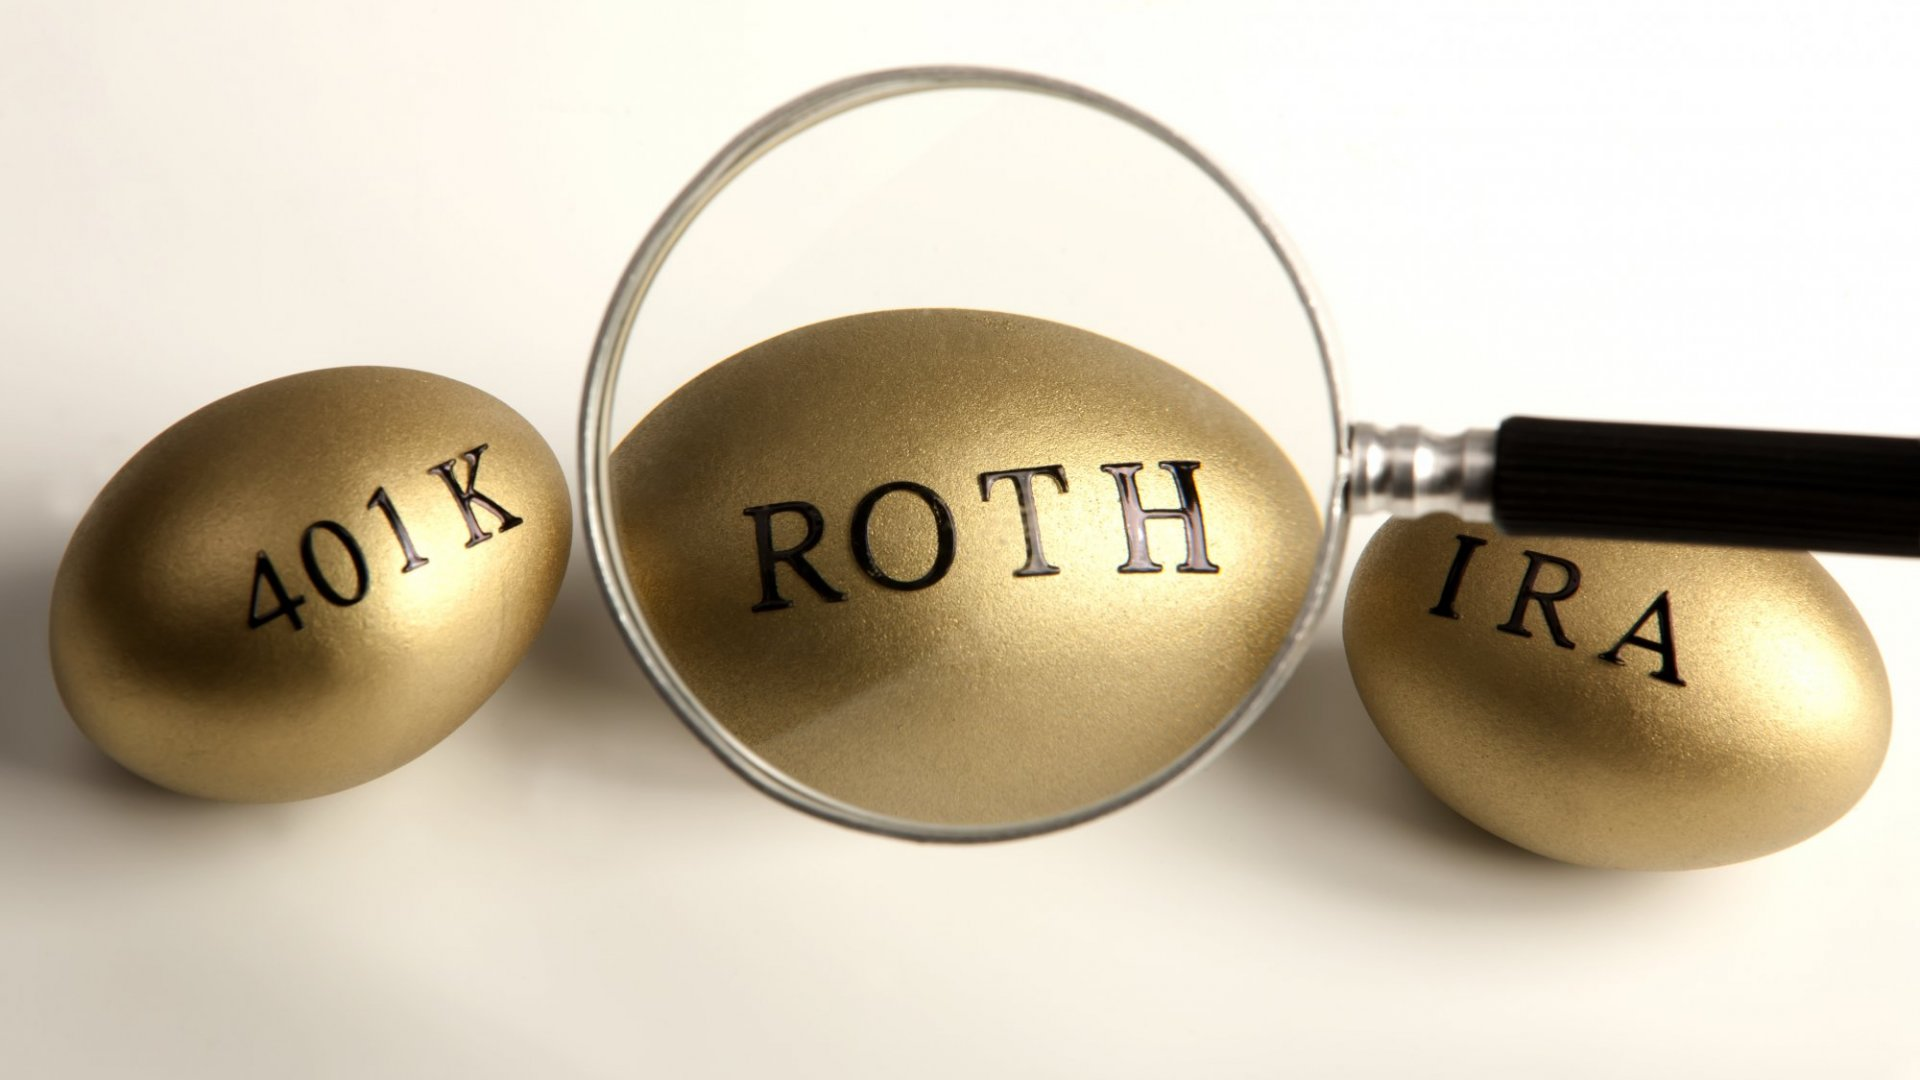 Roth IRA: A Tool to Boost Your Retirement Savings